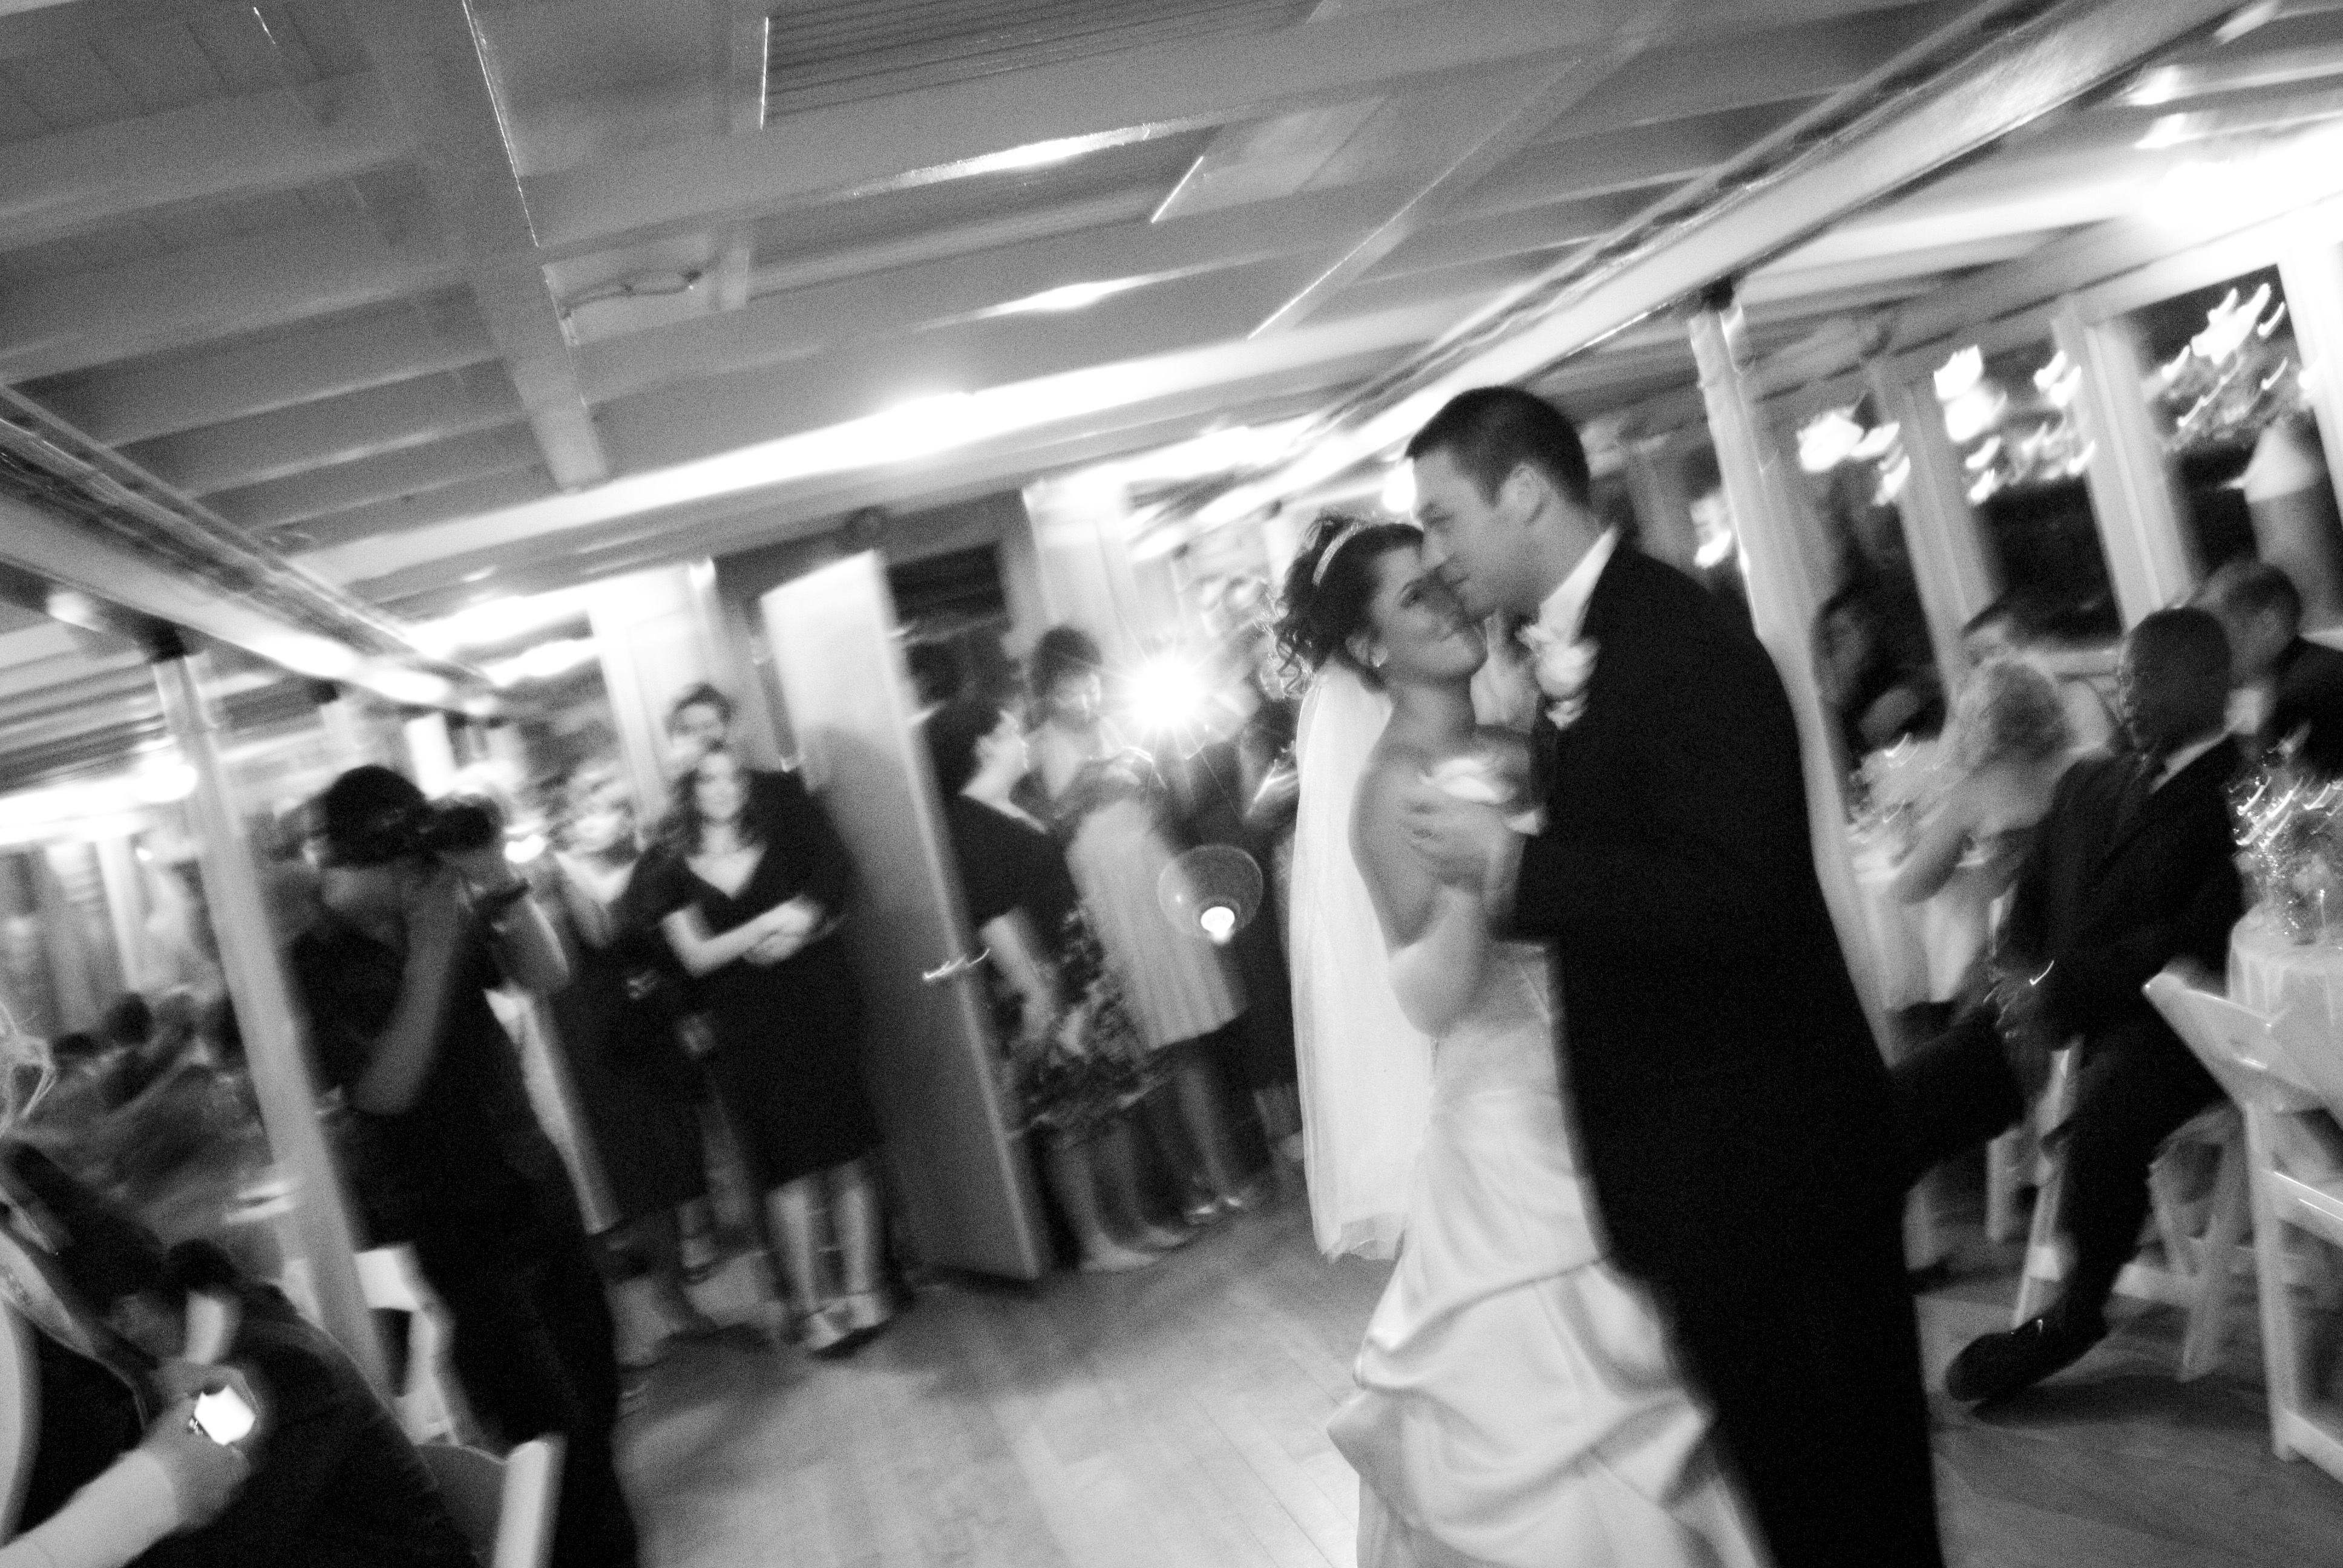 Destinations, Cruise, Bride, Groom, Dance, First dance, Boat, Ship, Virginia v steamship